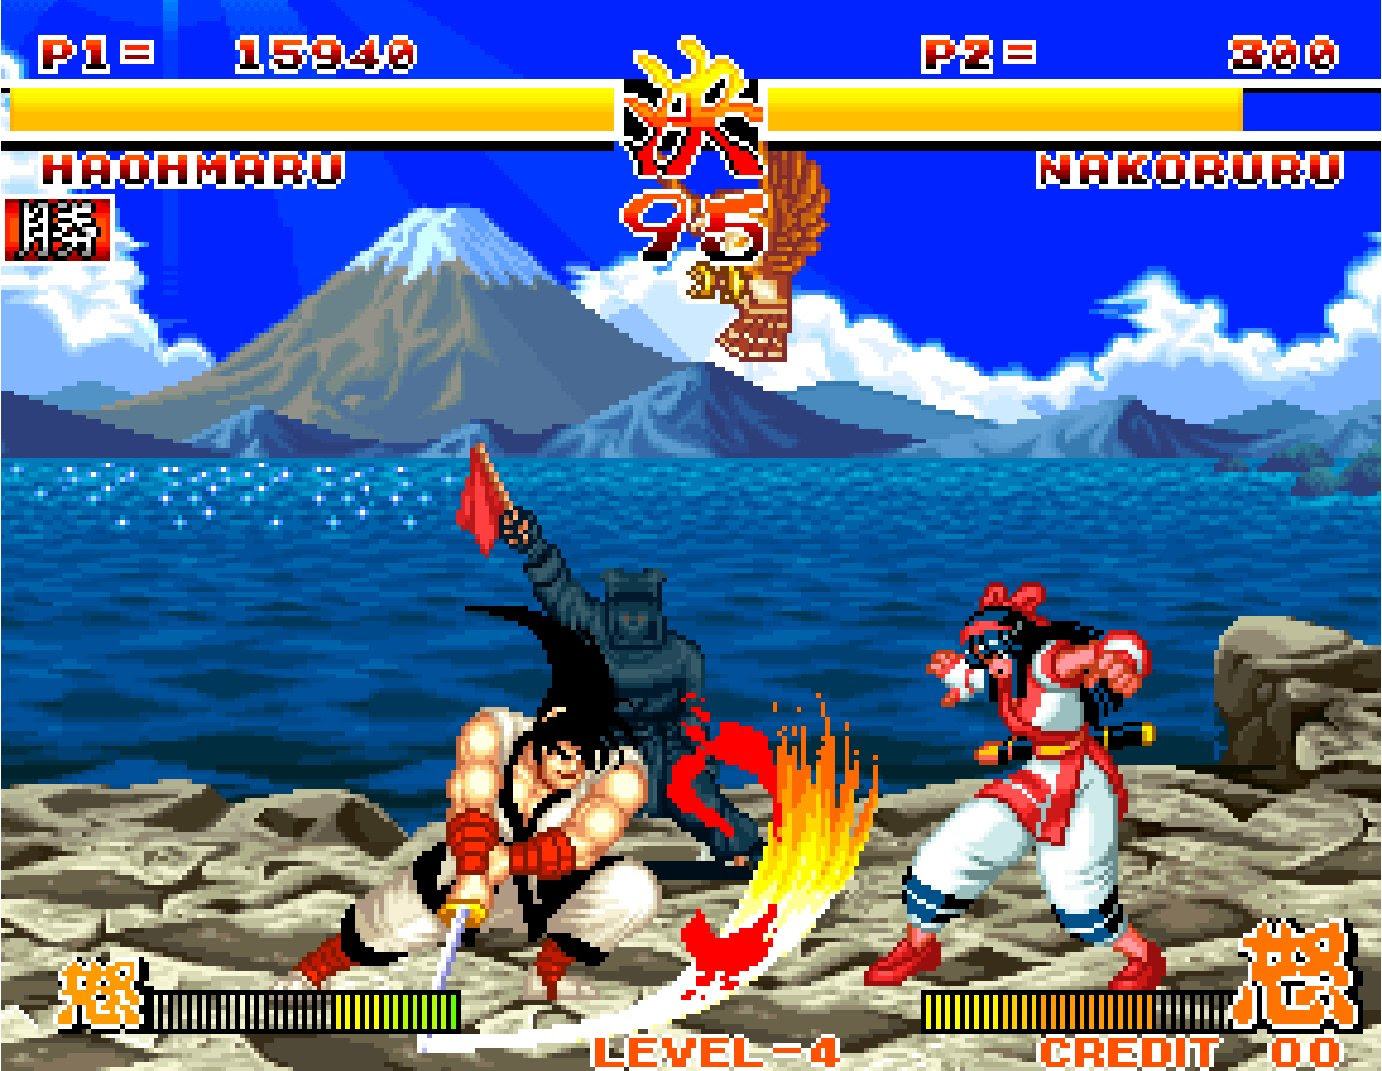 Three more Neo Geo arcade classics now available screenshot